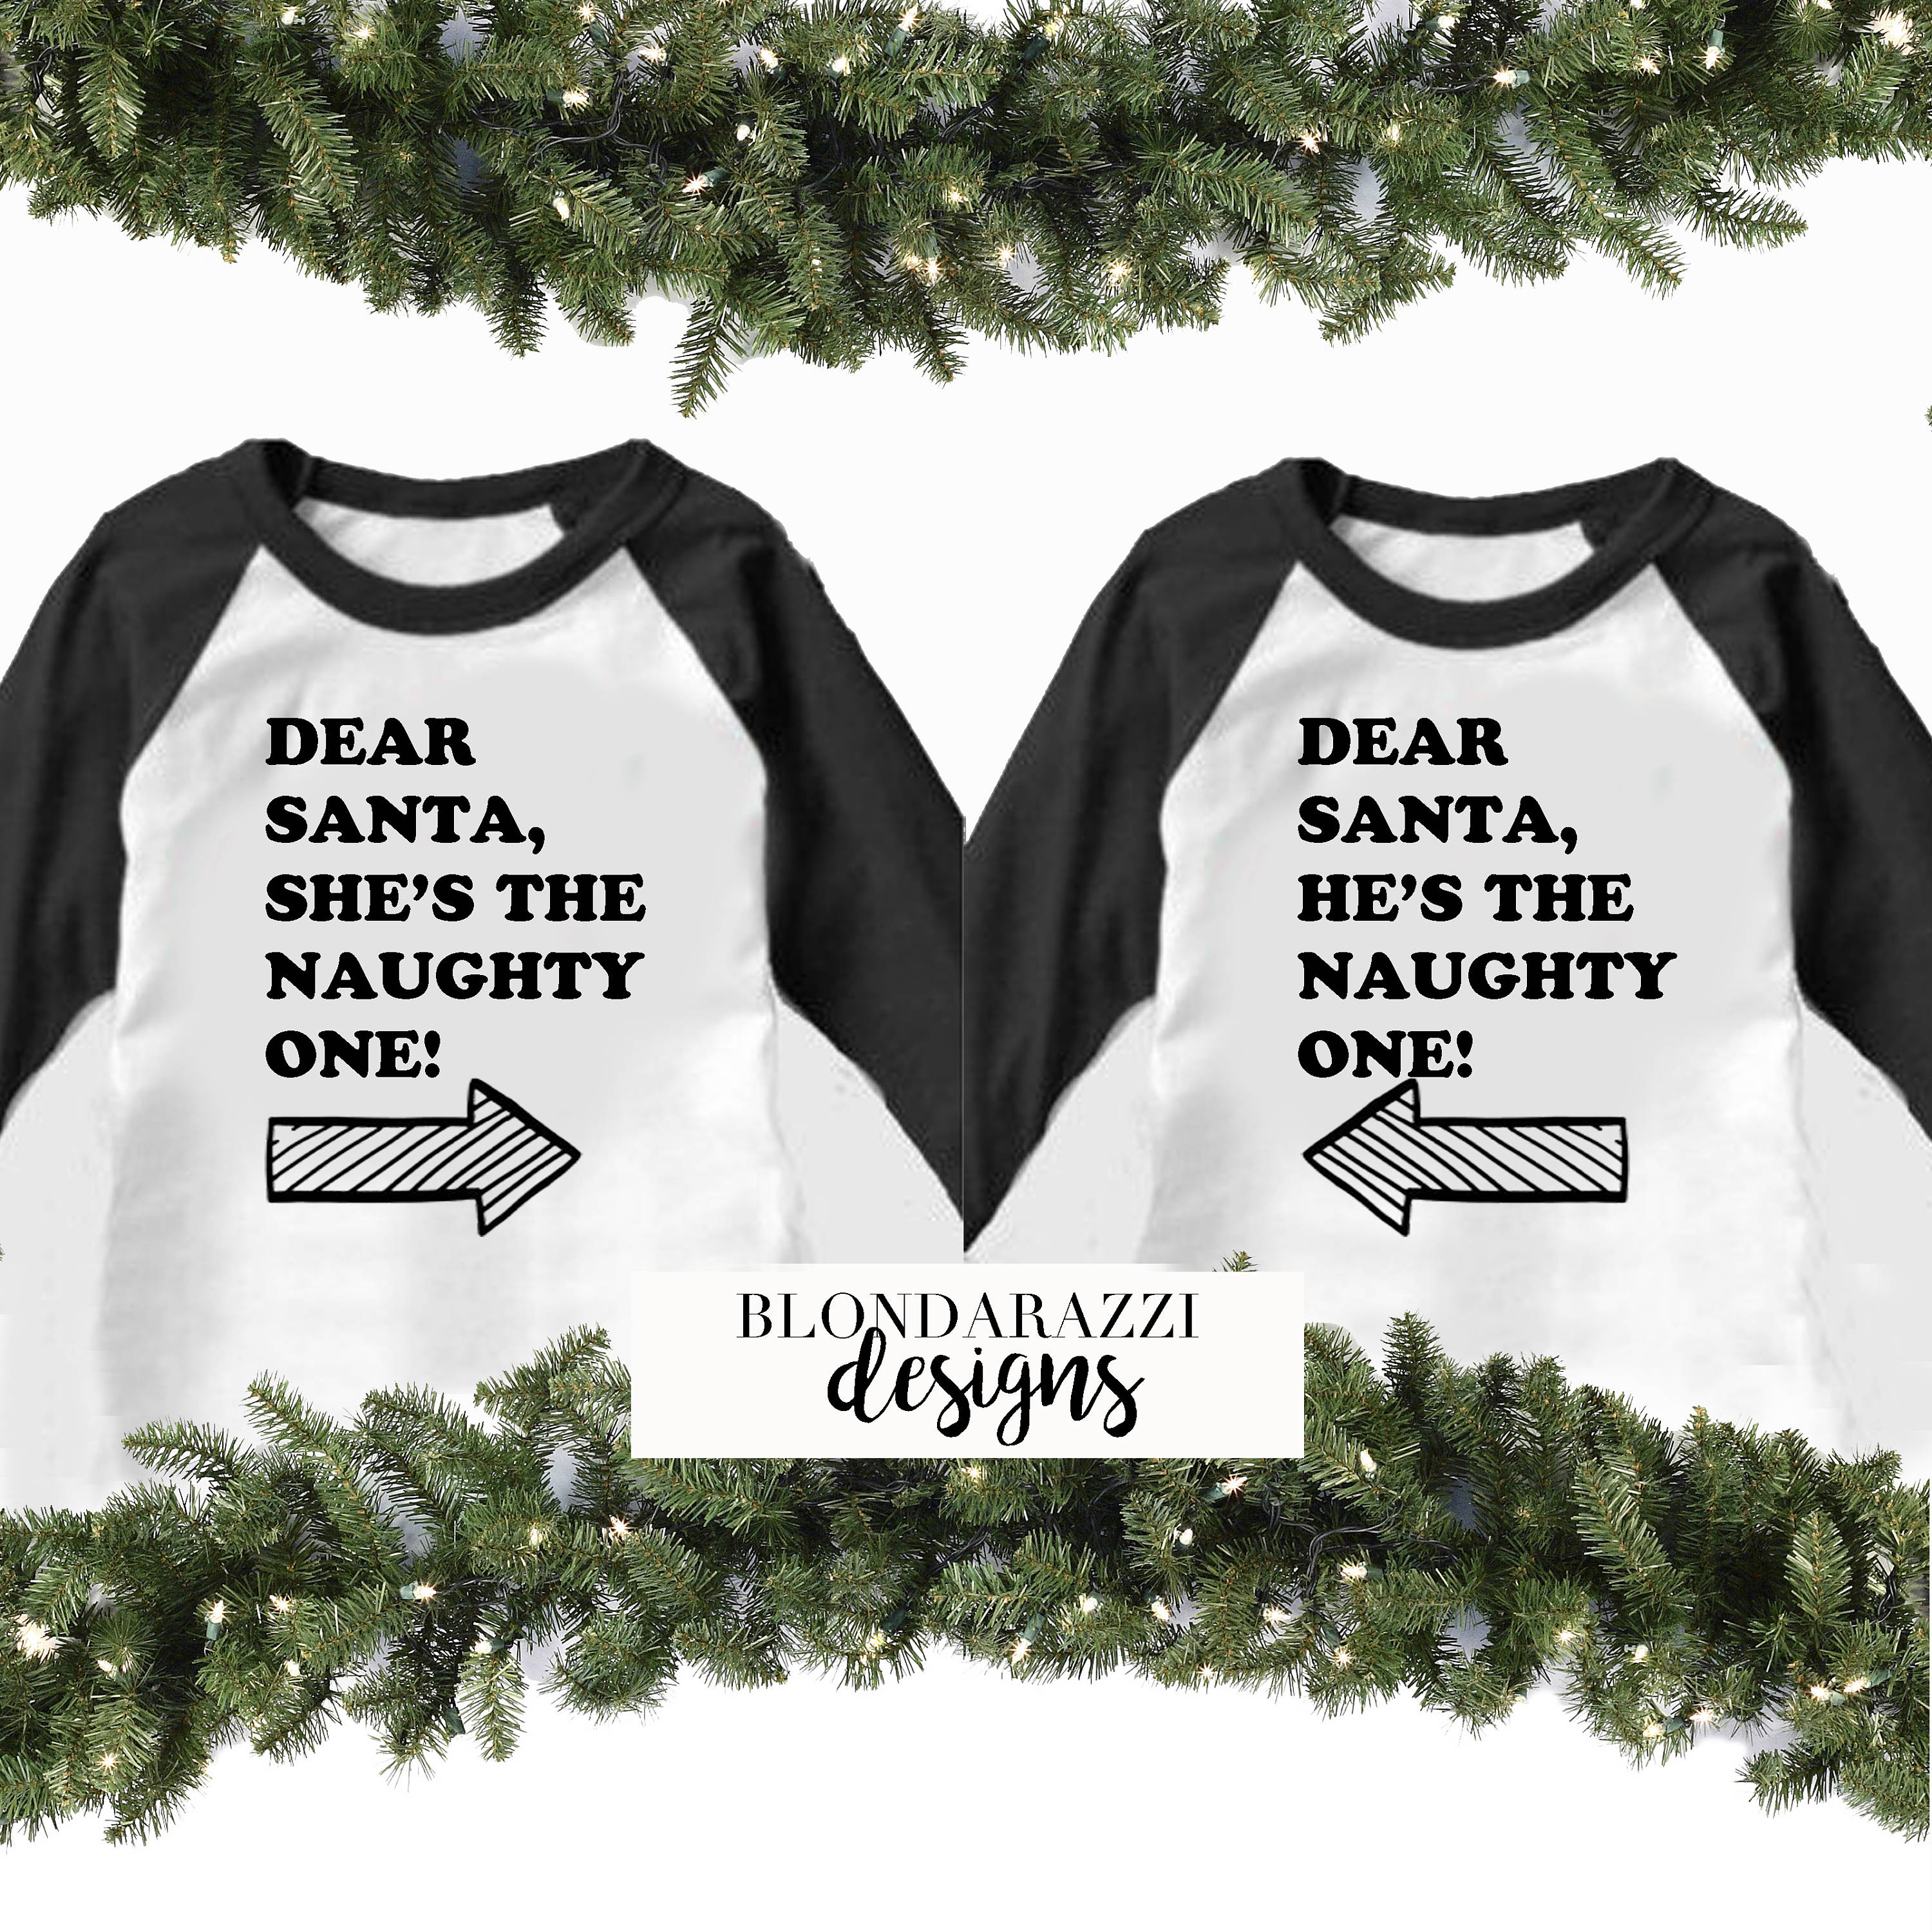 29cc0adc4 Funny Matching Christmas Shirts for Kids Sibling Brother and Sister Dear  Santa She's He's the Naughty One Baseball Tee Pajama tshirts